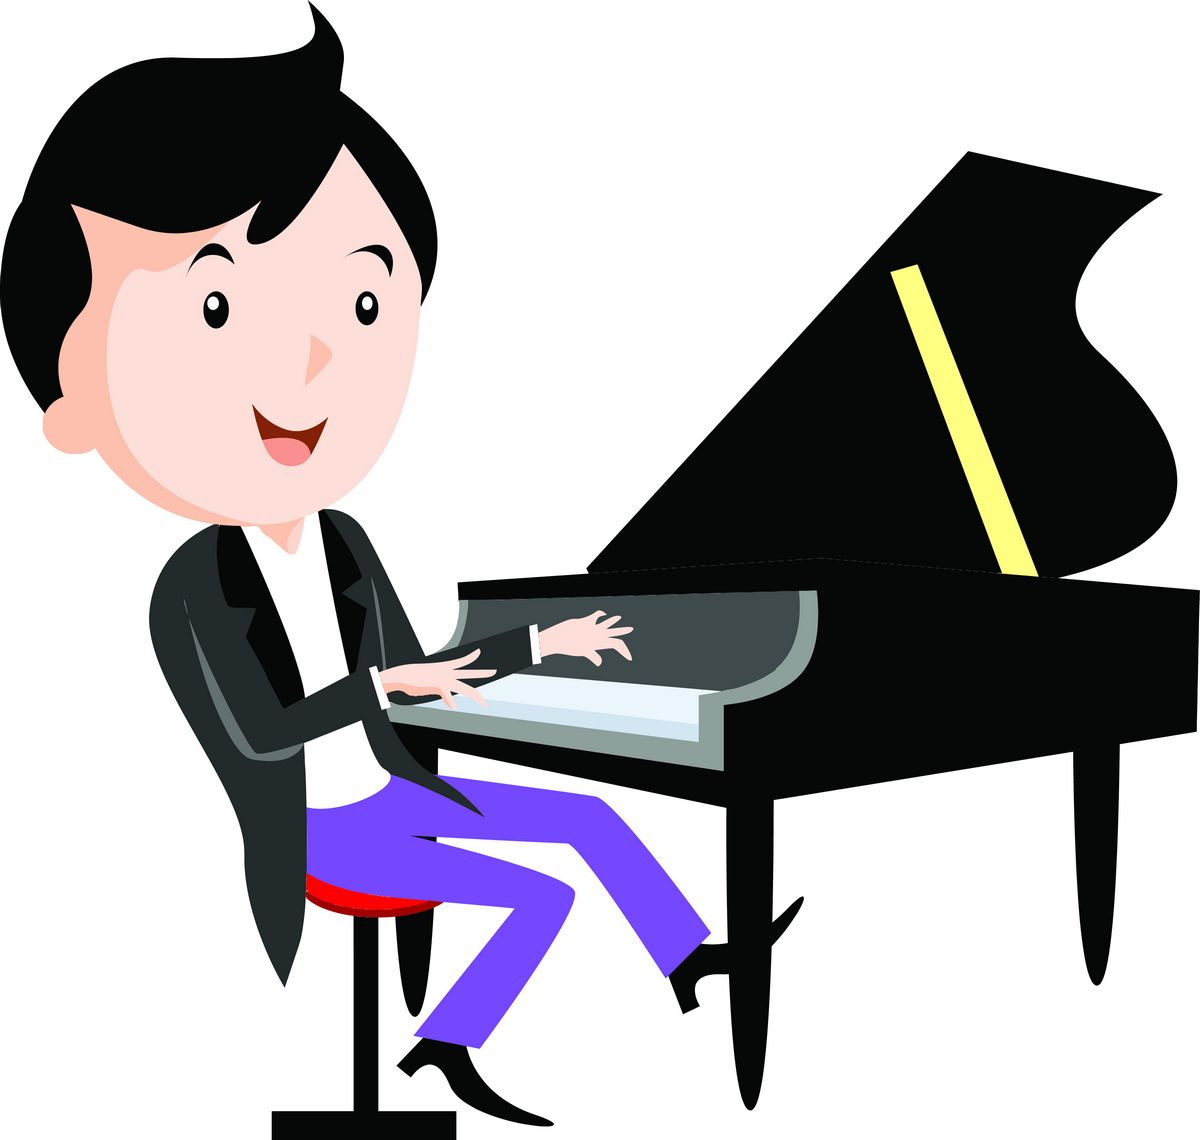 Children playing musical instruments   Piano png